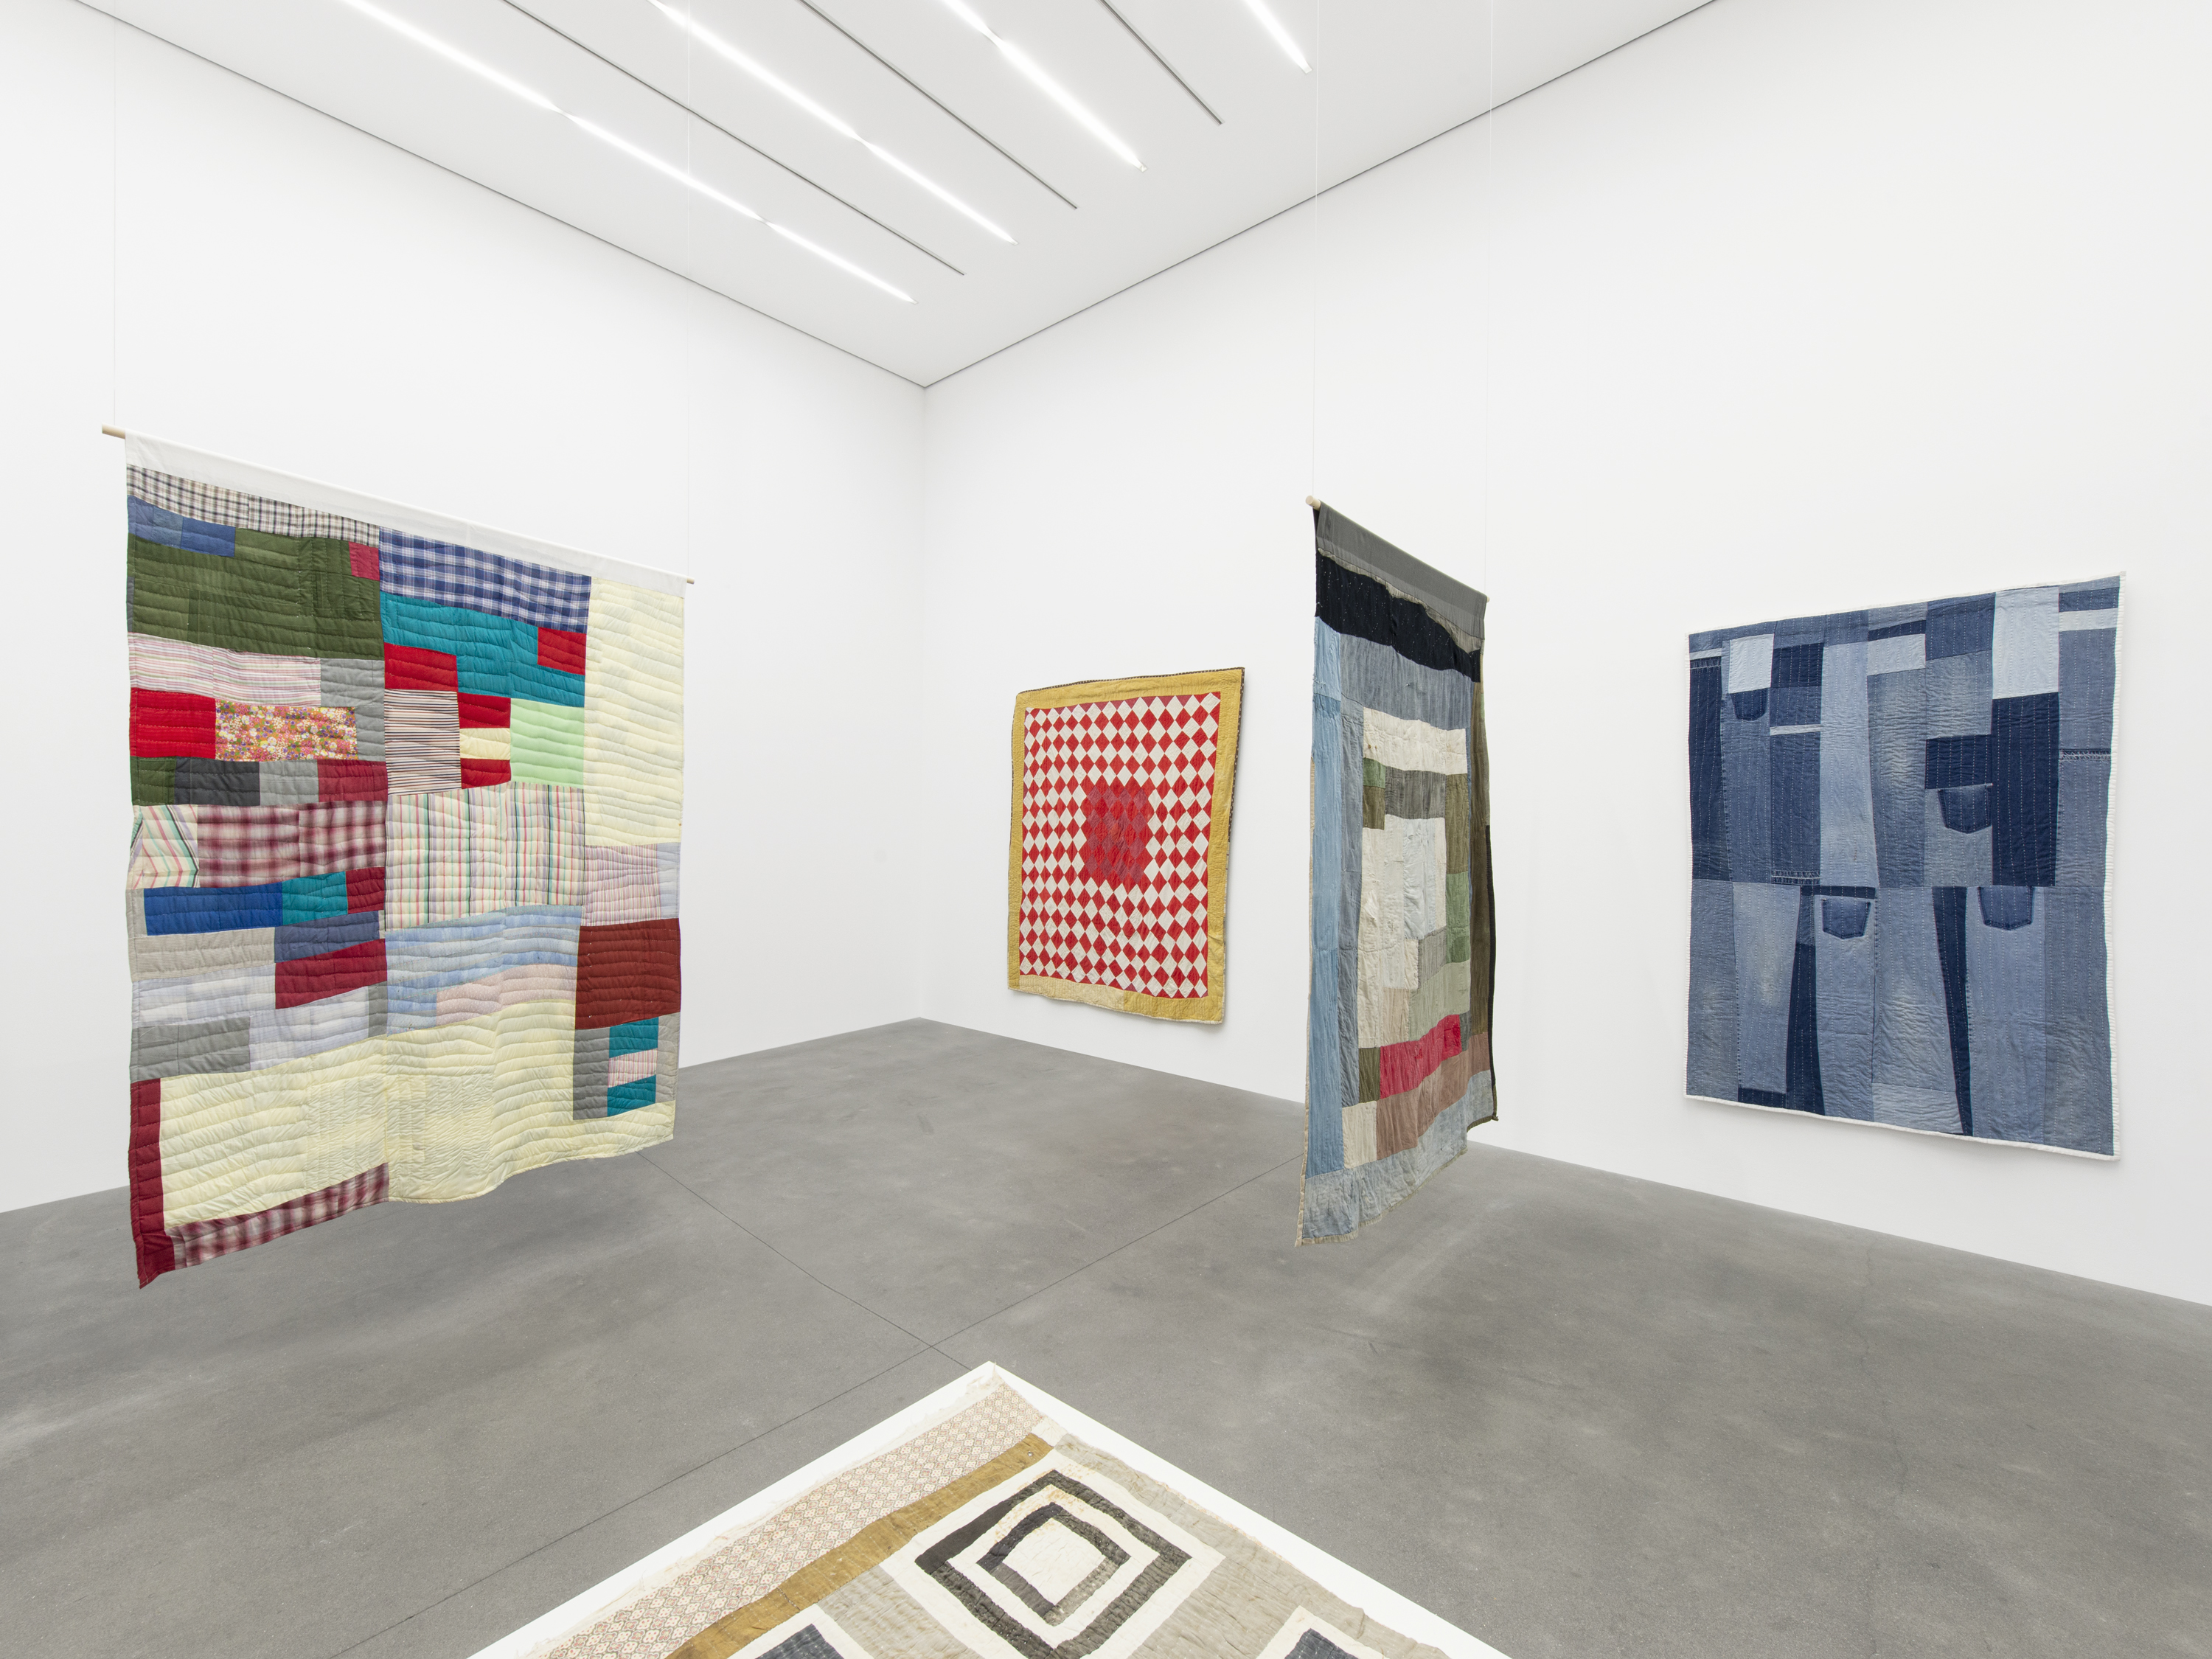 Installation View 8, THE GEE'S BEND QUILTMAKERS, Alison Jacques Gallery, 2021, All images courtesy of Alison Jacques Gallery